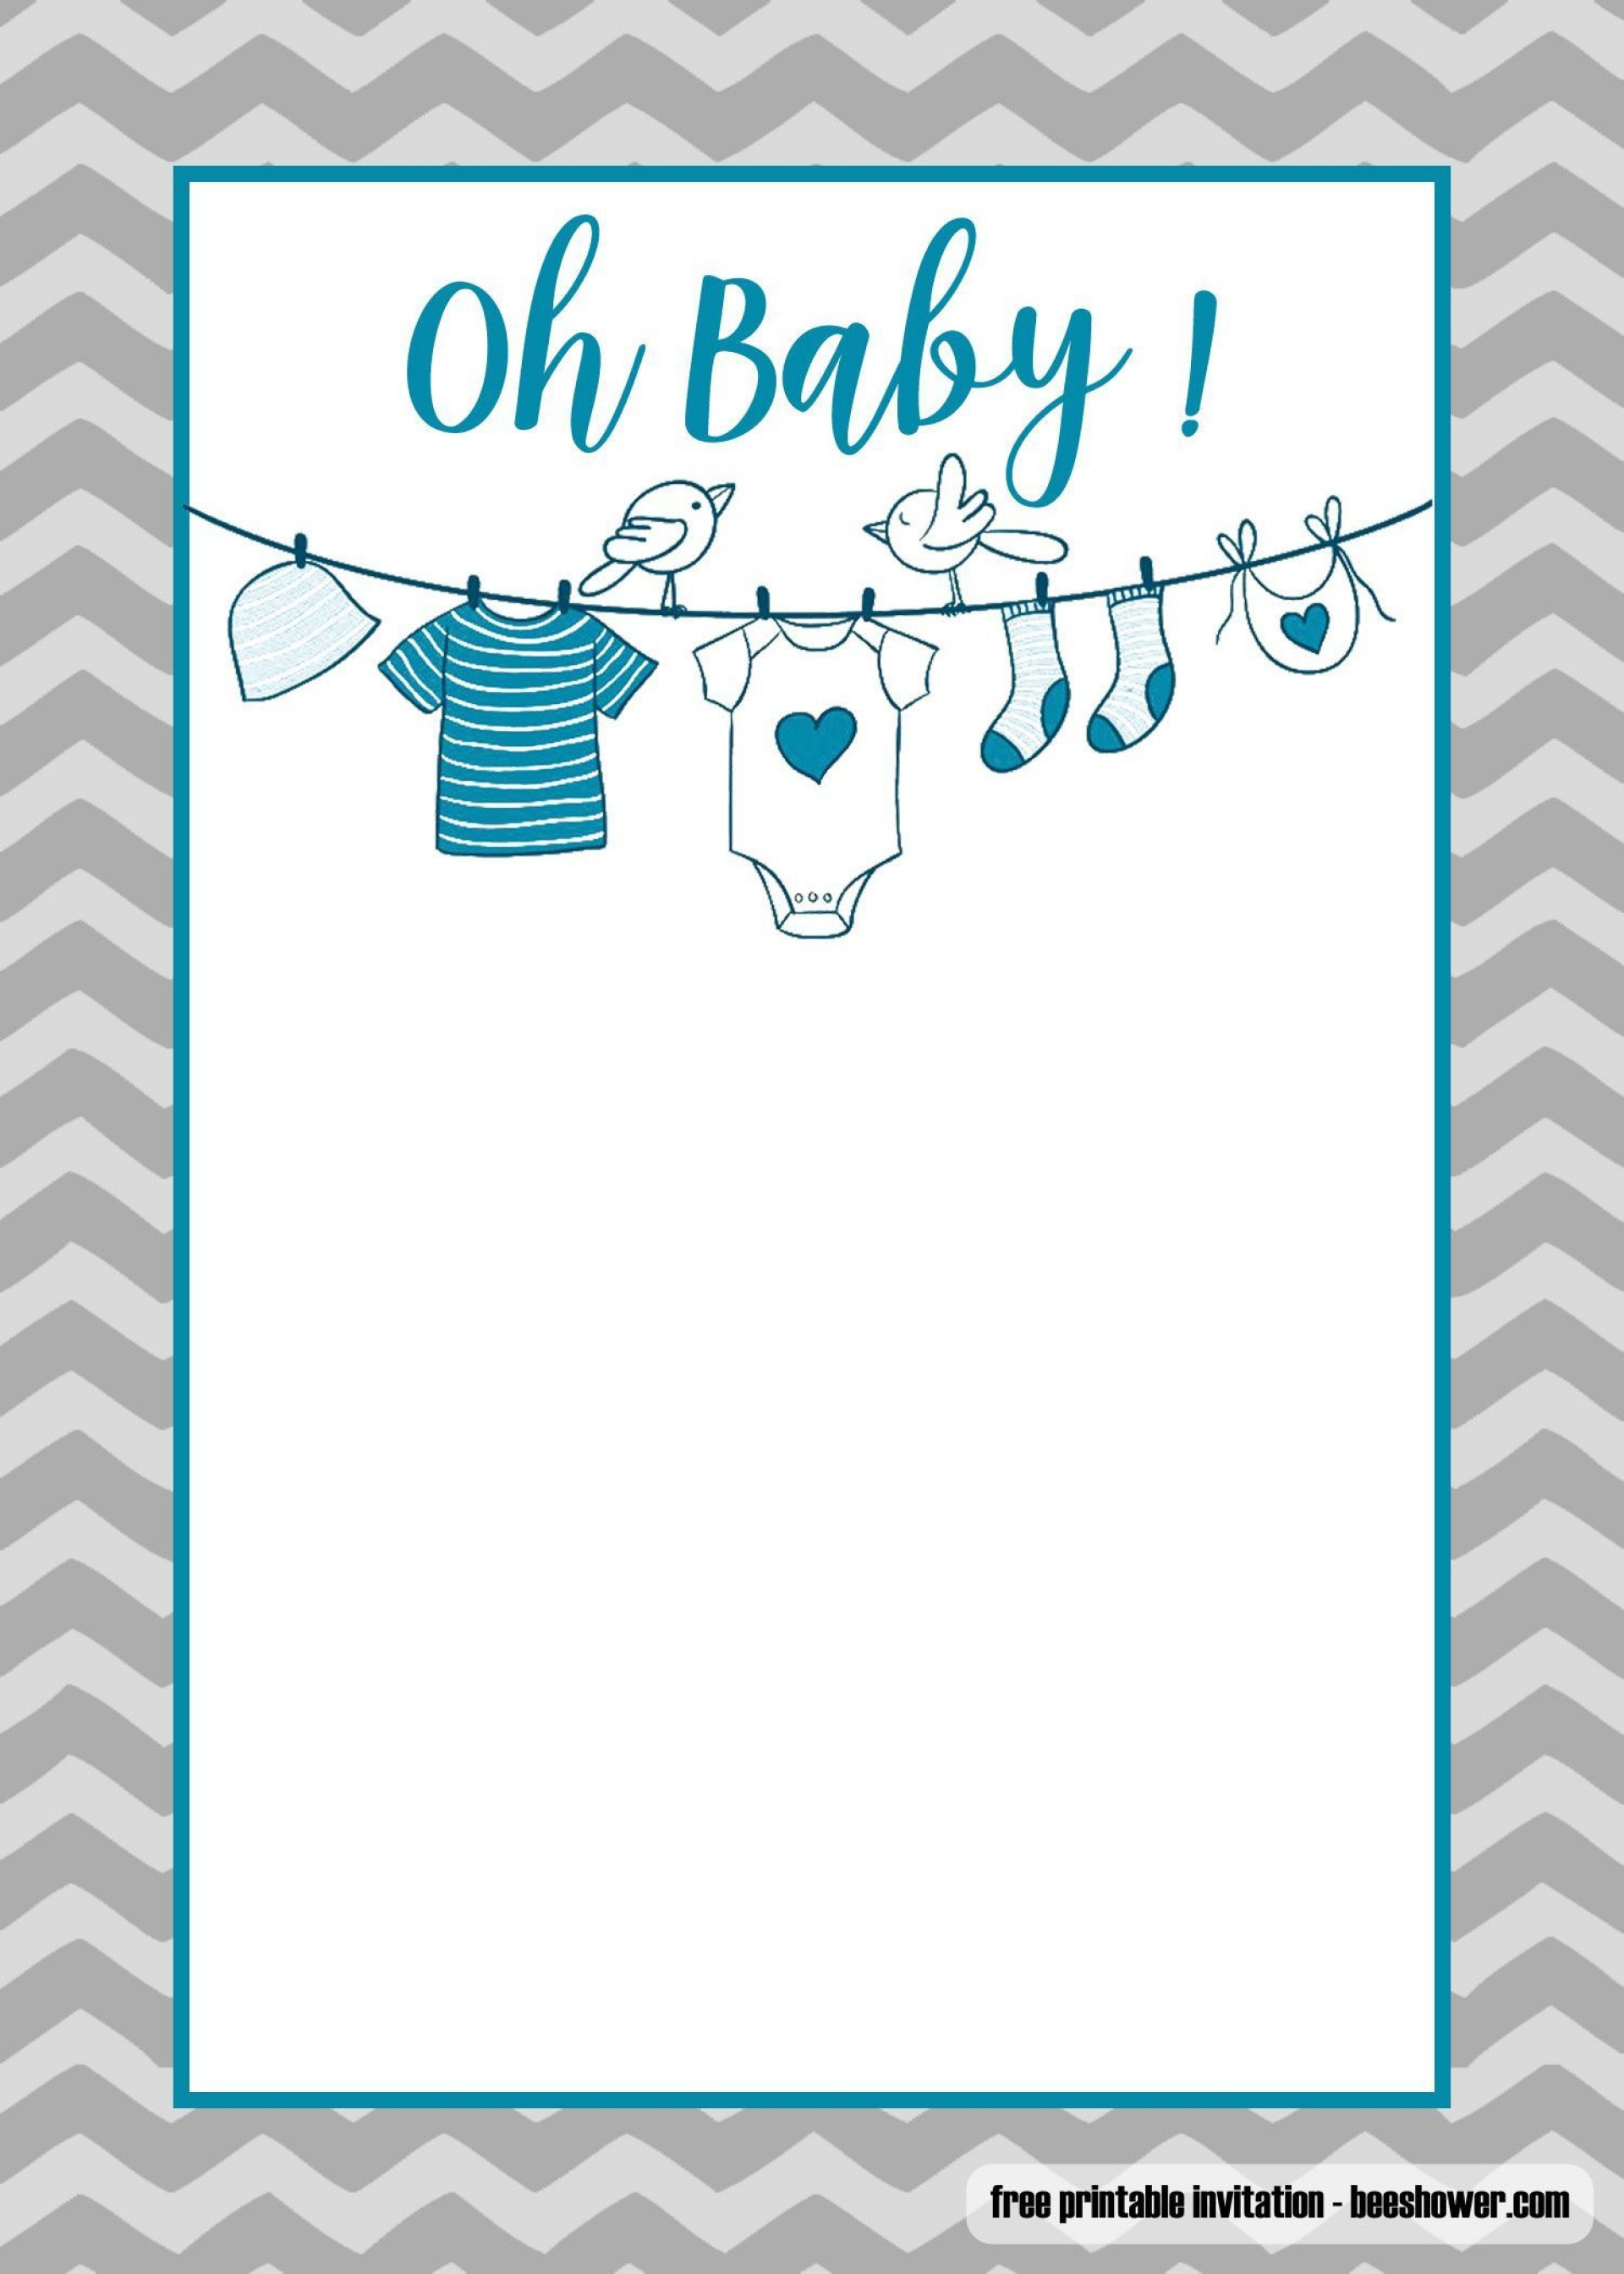 007 Sensational Baby Shower Invitation Card Template Free Download Image  Indian1920